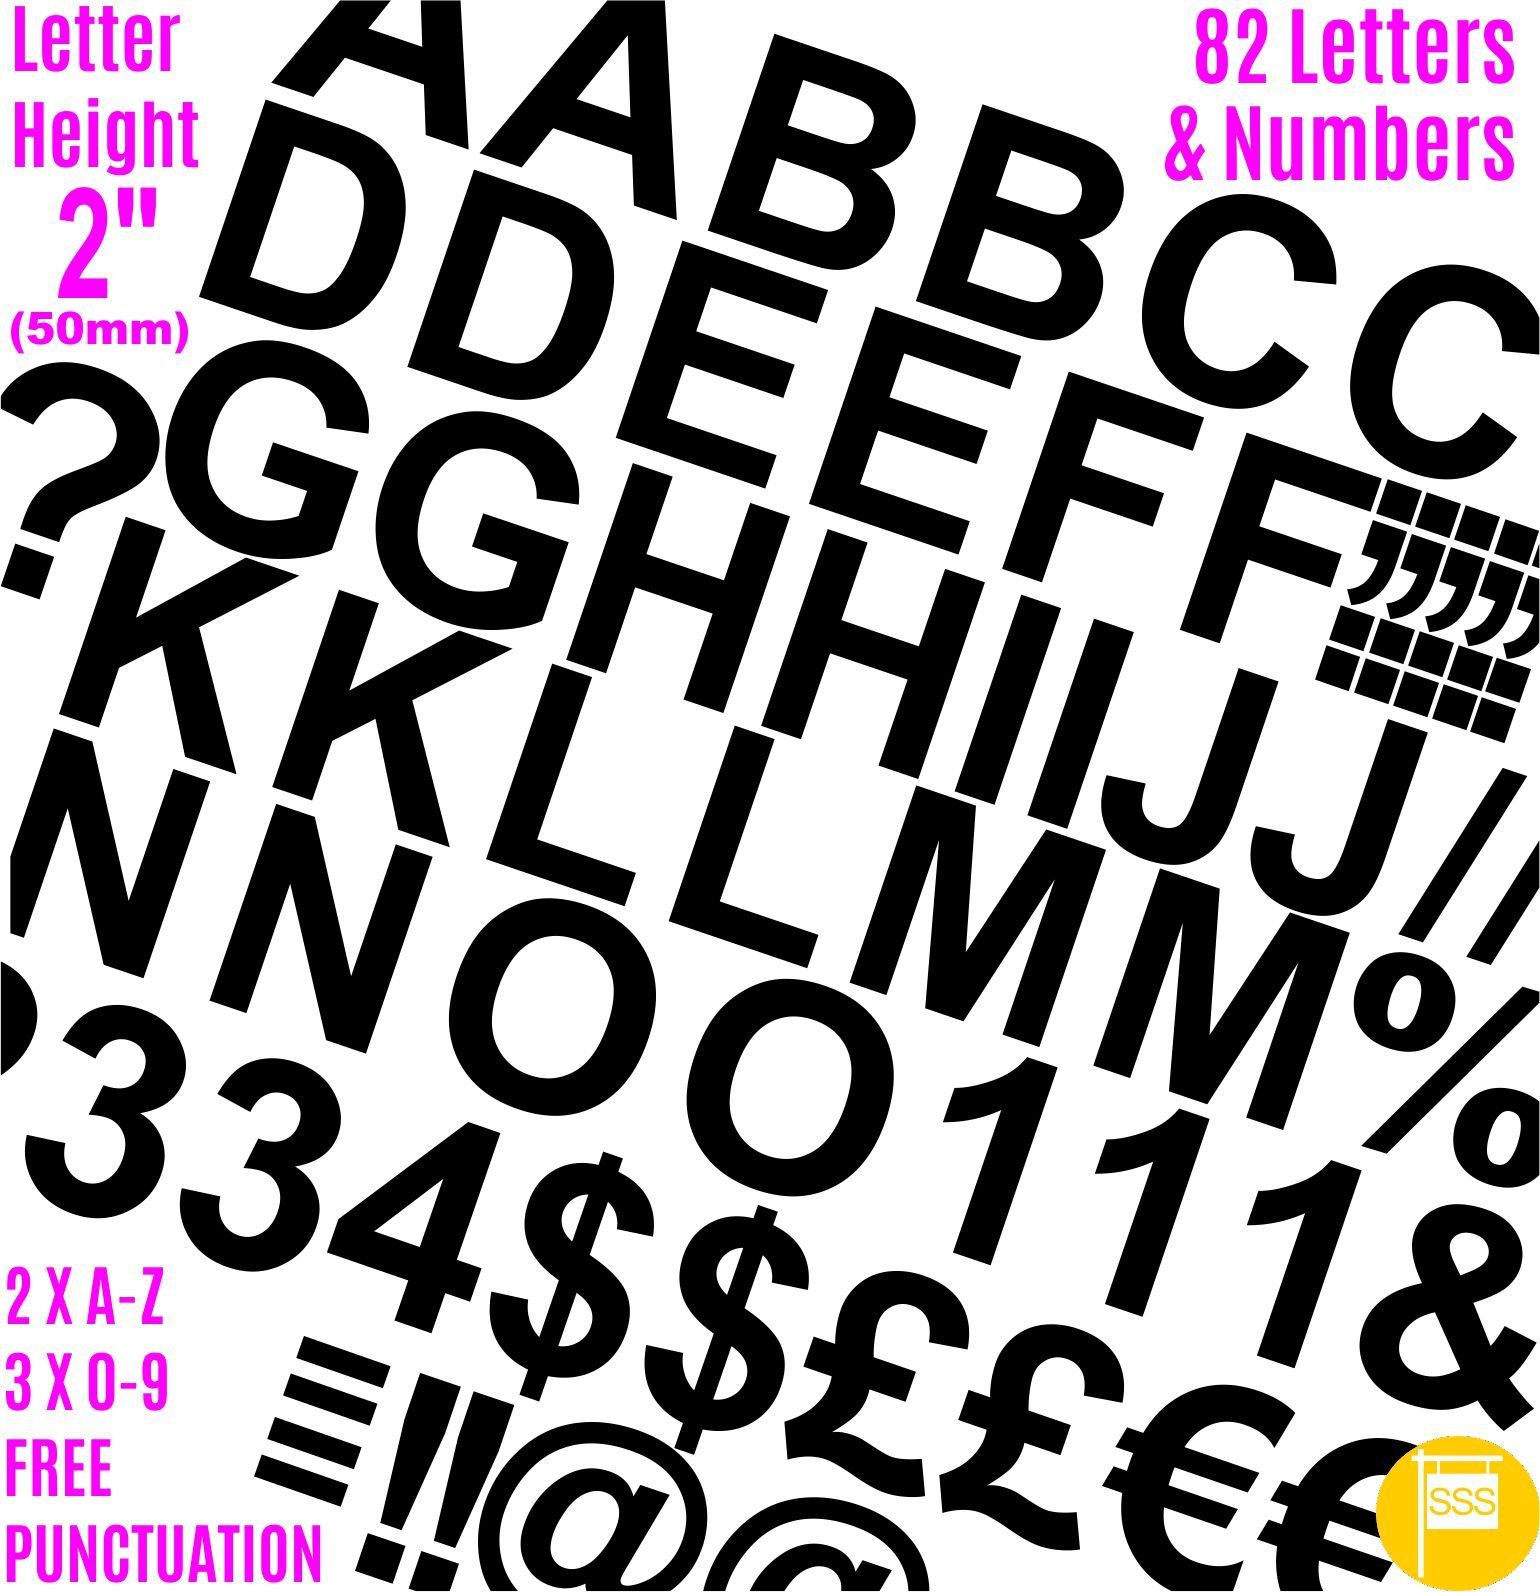 Professional Pack of 82 pcs X 2''(50mm) Self Adhesive BLACK Letters & Numbers Stickers Free Punctuation Washproof Large Lettering Signwriting Water Proof Any Project